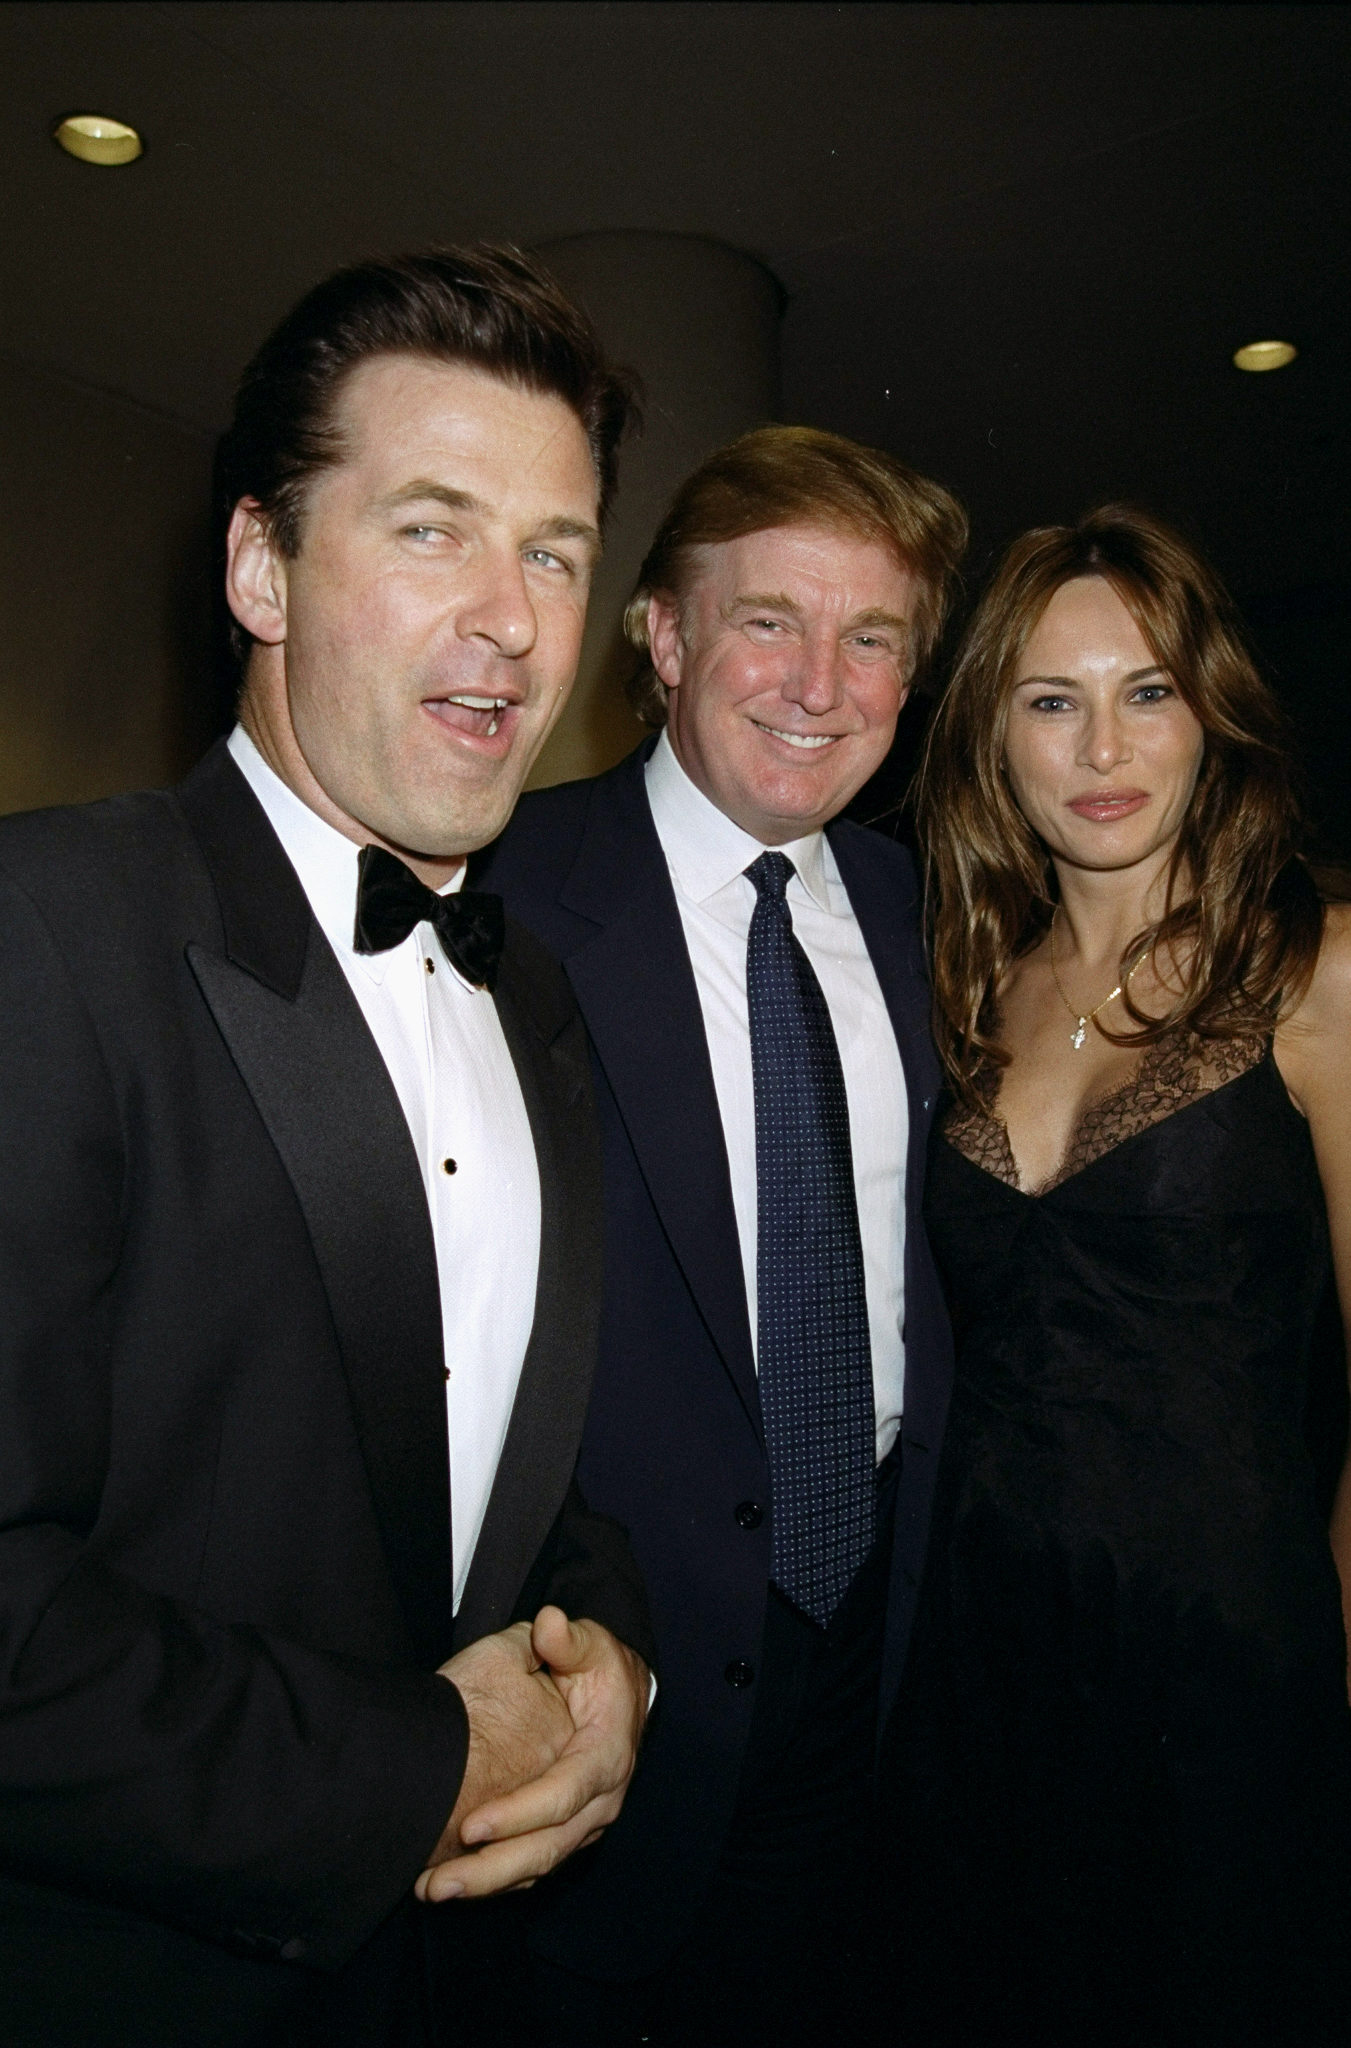 Alec Baldwin is joined by Donald Trump and Melania Knauss at benefit for the Carol M. Baldwin Breast Cancer Research Fund at the Marriott Marquis Hotel on October 8, 1999.